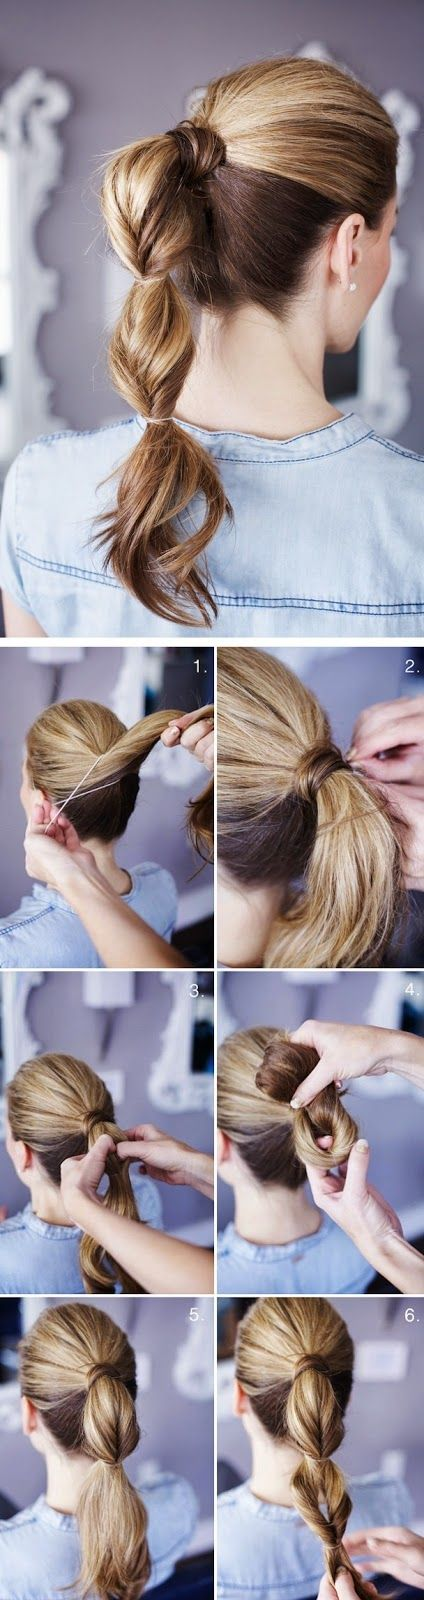 Pretty Simple : Grown - Up Topsy Tail